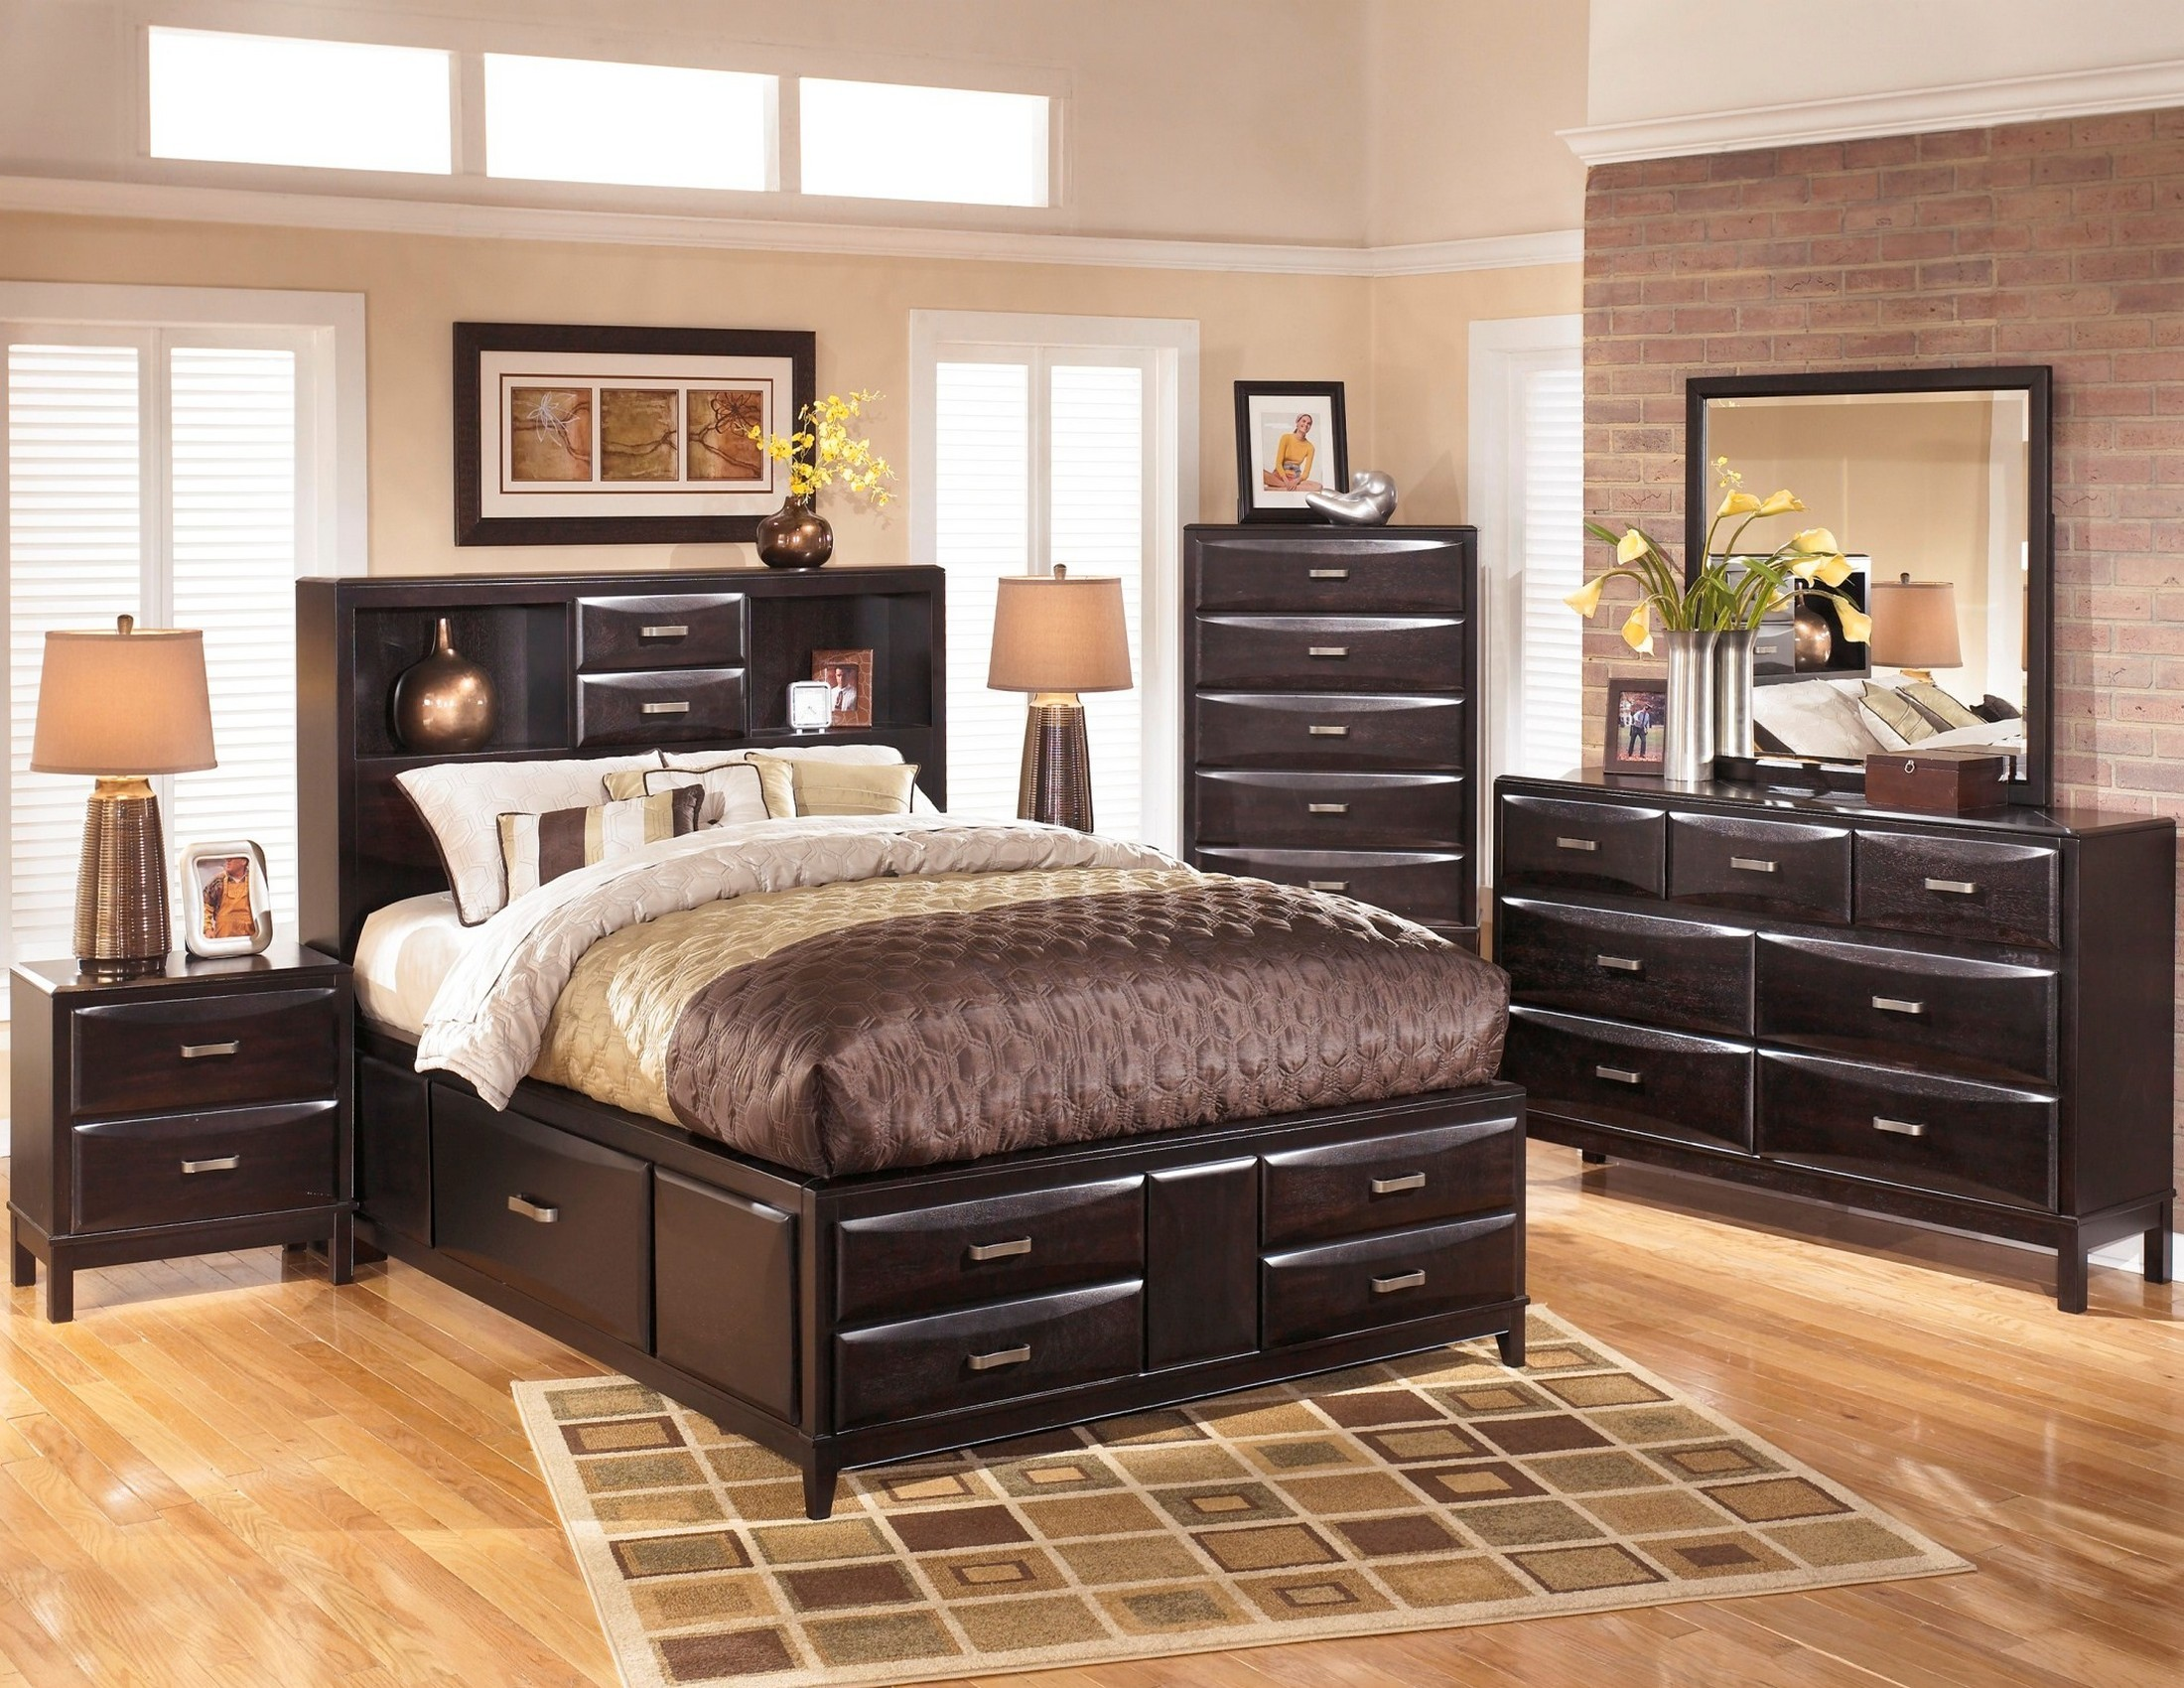 Kira Storage Platform Bedroom Set from Ashley (B473-64-65-98 ...